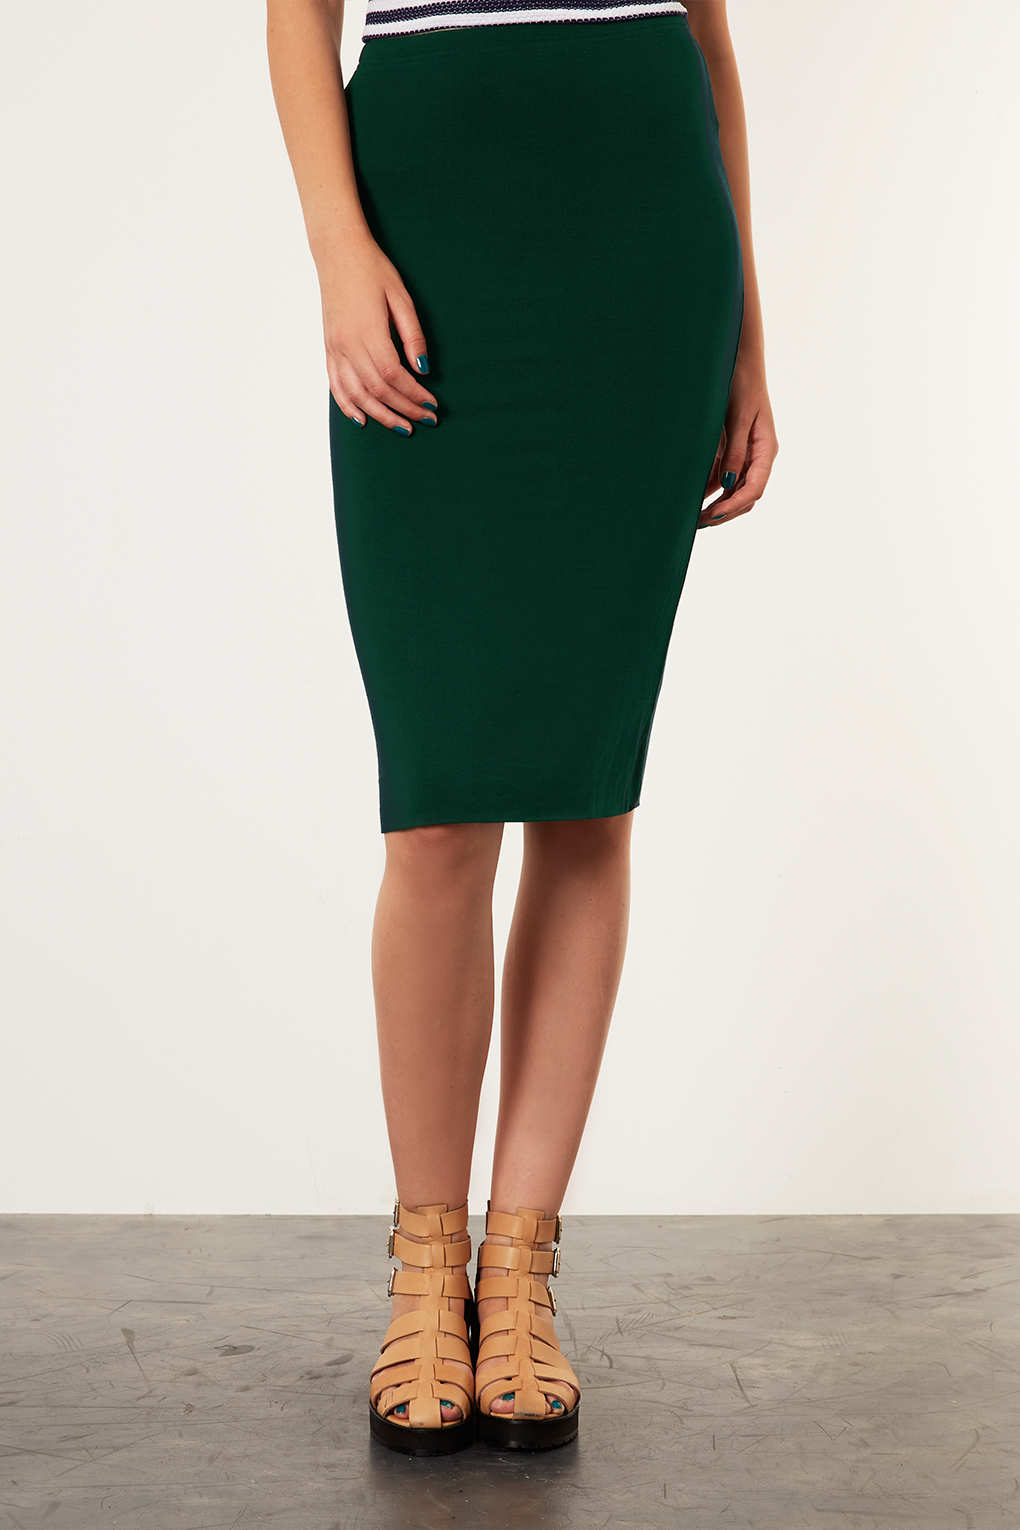 lyst - topshop dark green double layer tube skirt in green